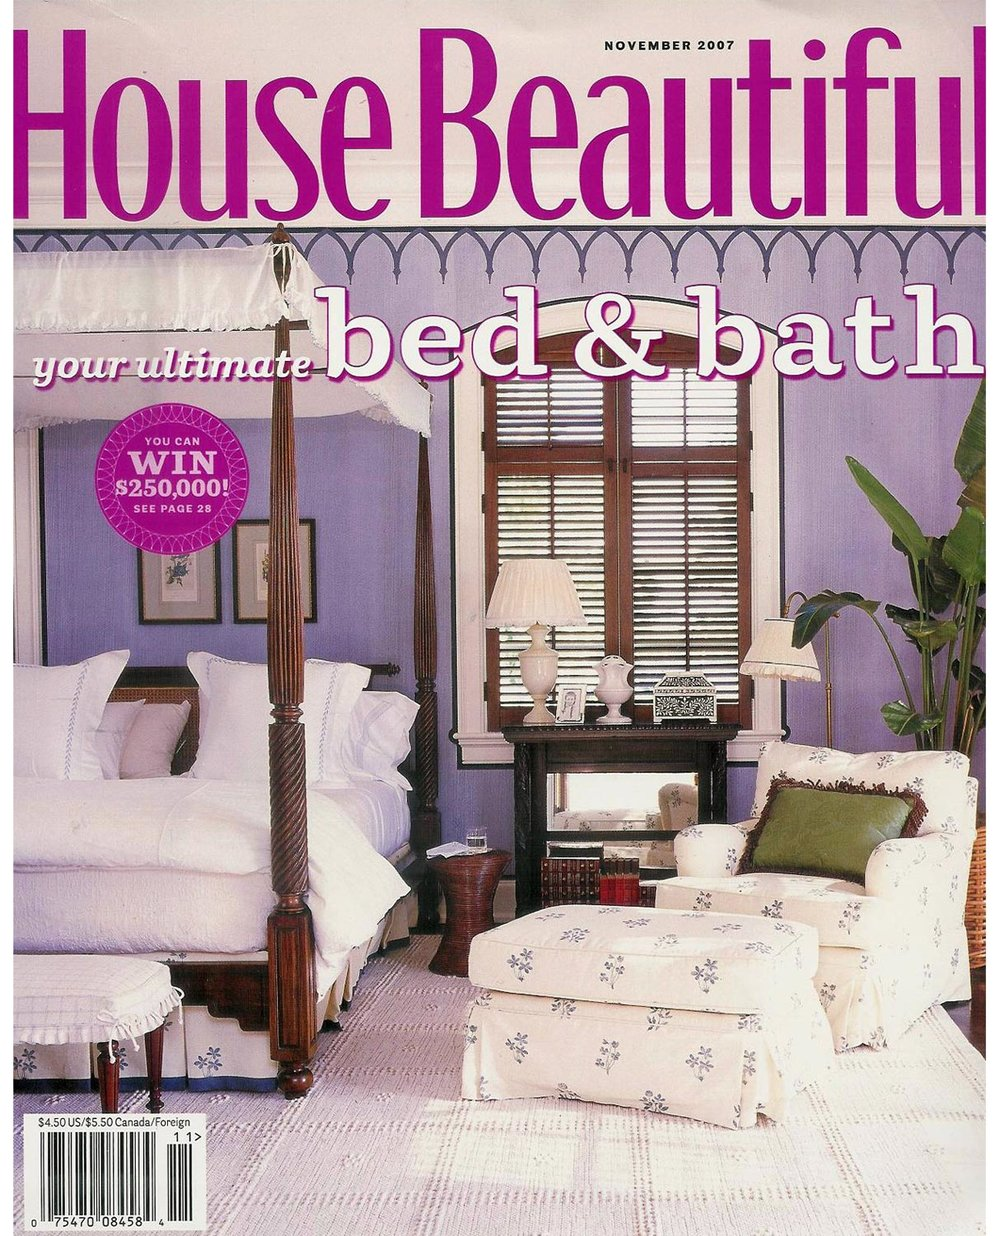 housebeautiful2007-cover_alemanmoore.jpg